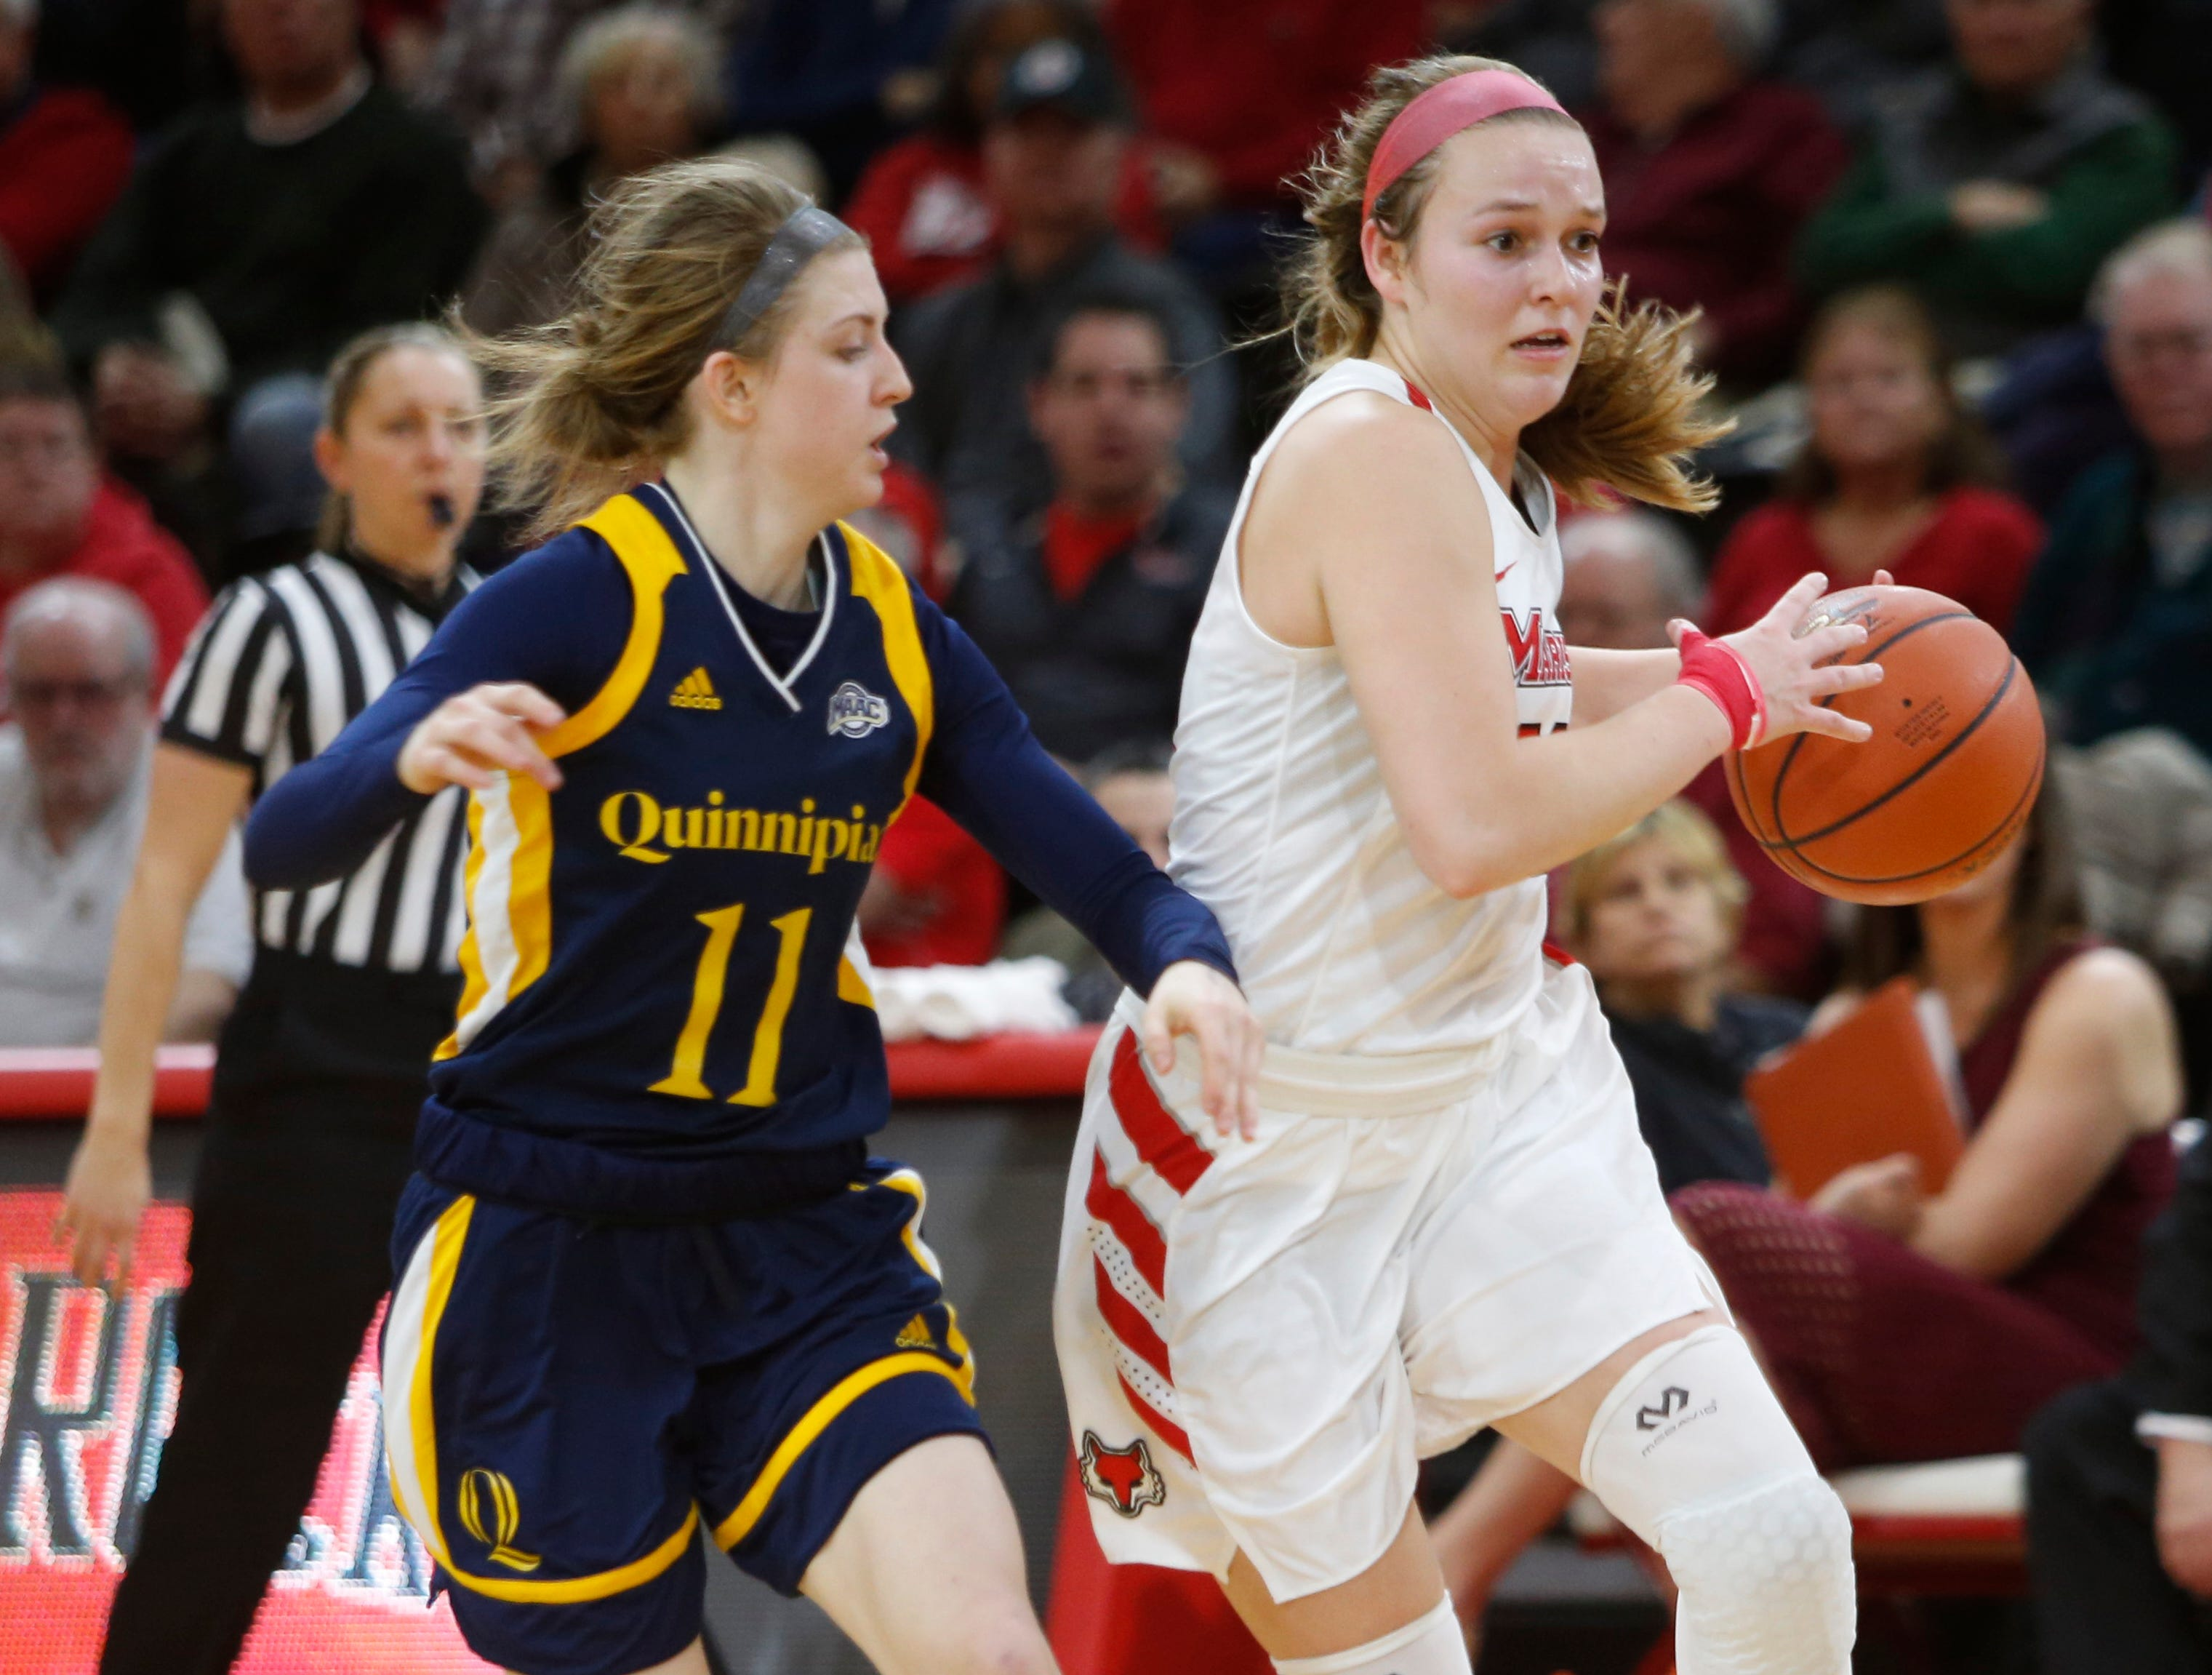 Action from the Marist College versus Quinnipiac women's basketball game on January 10, 2019.